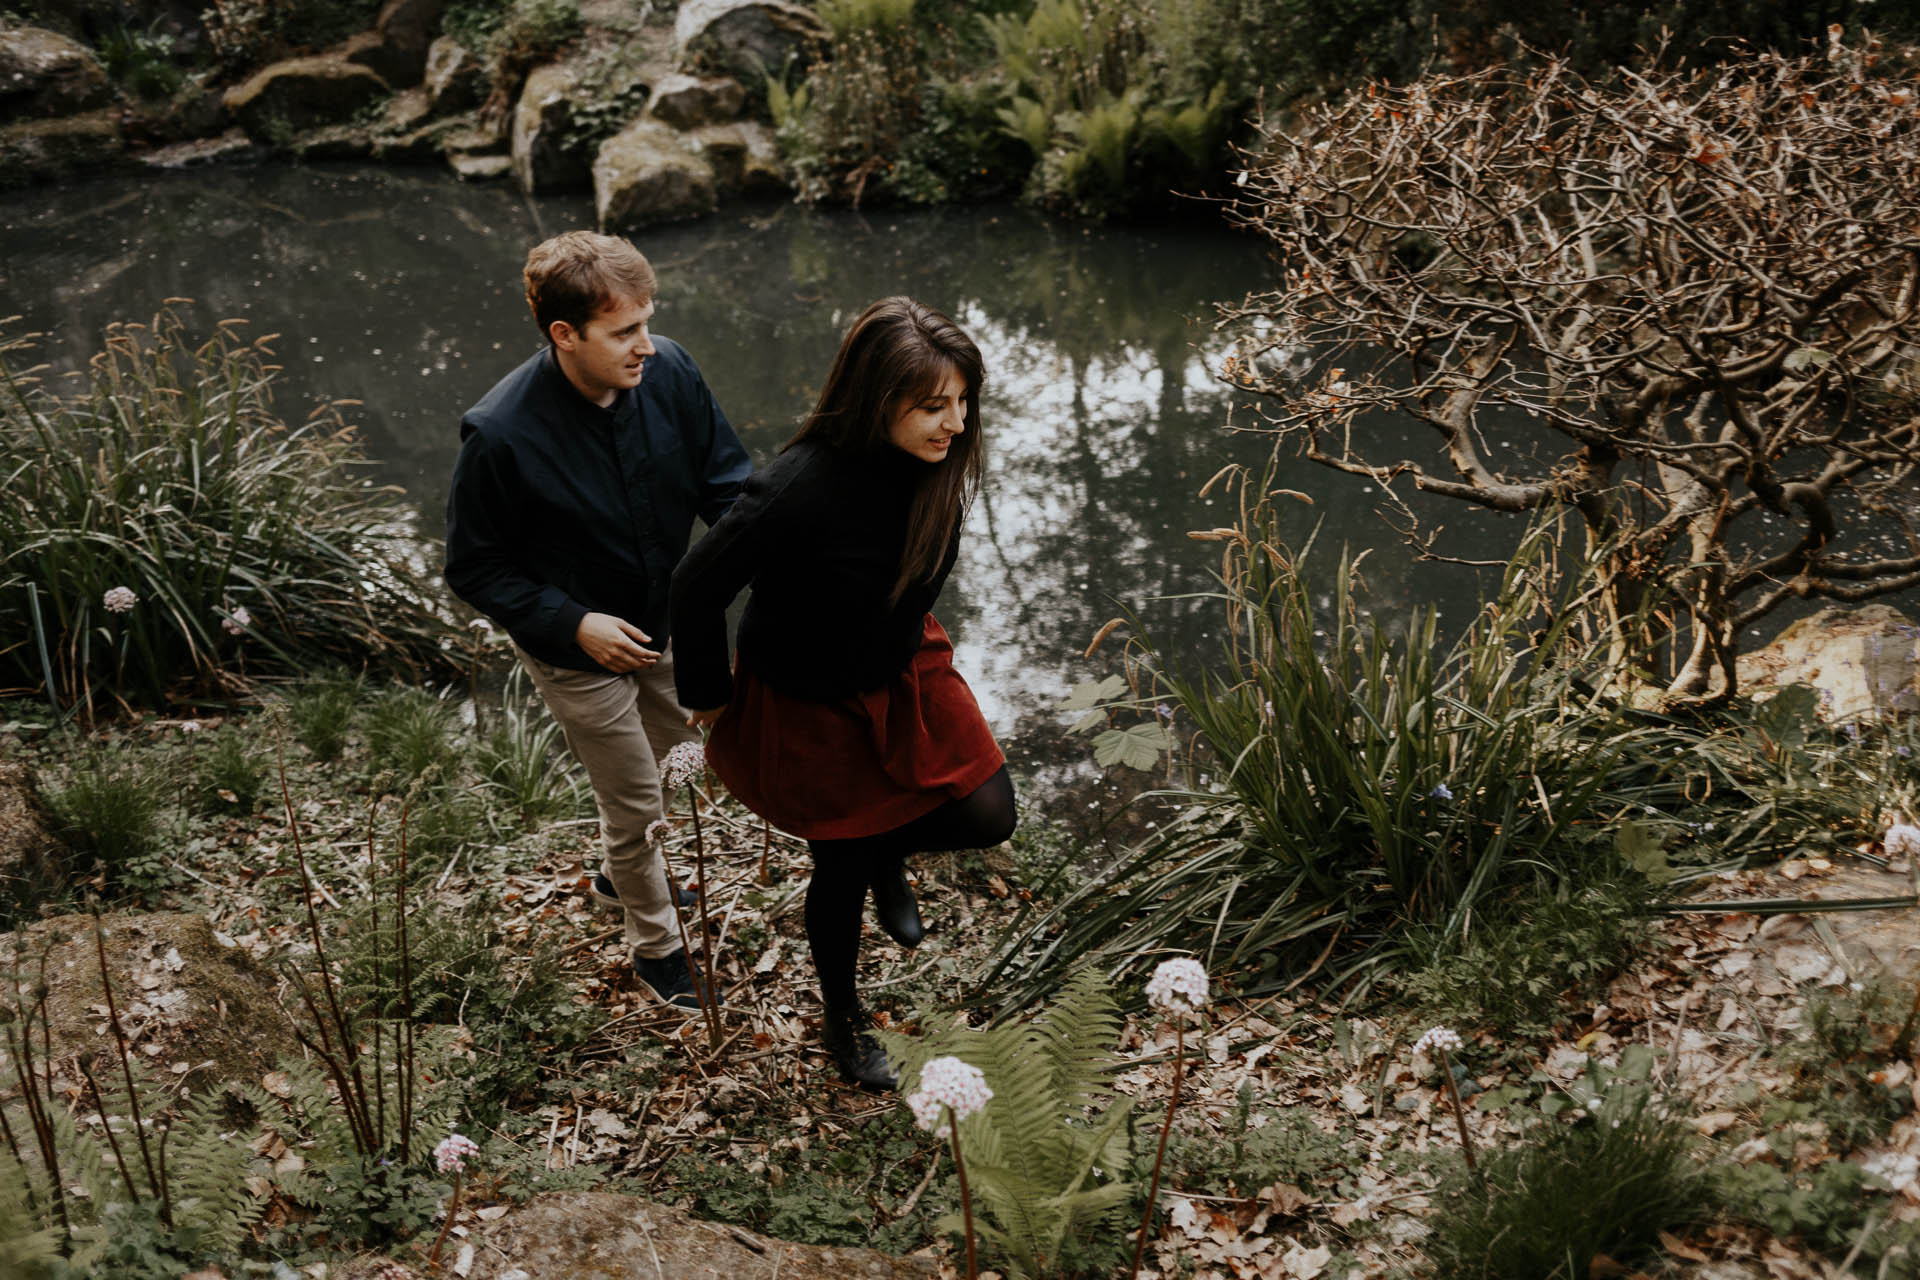 engagement_session_nantes_parc_flavie_nelly_photographe_mariage-41